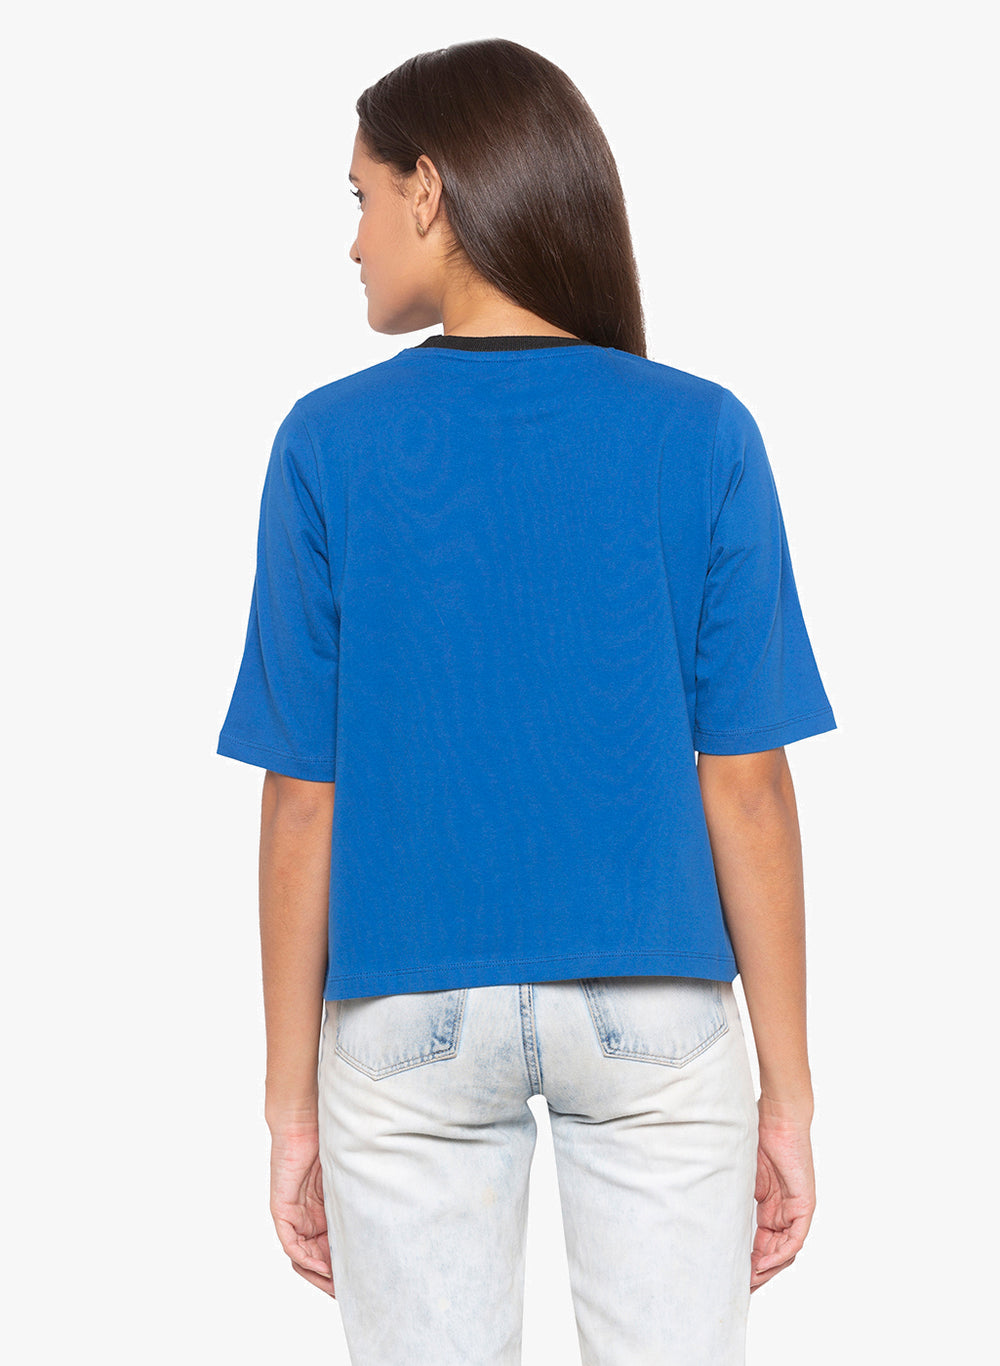 Royal Blue Boxy Fit T-shirt